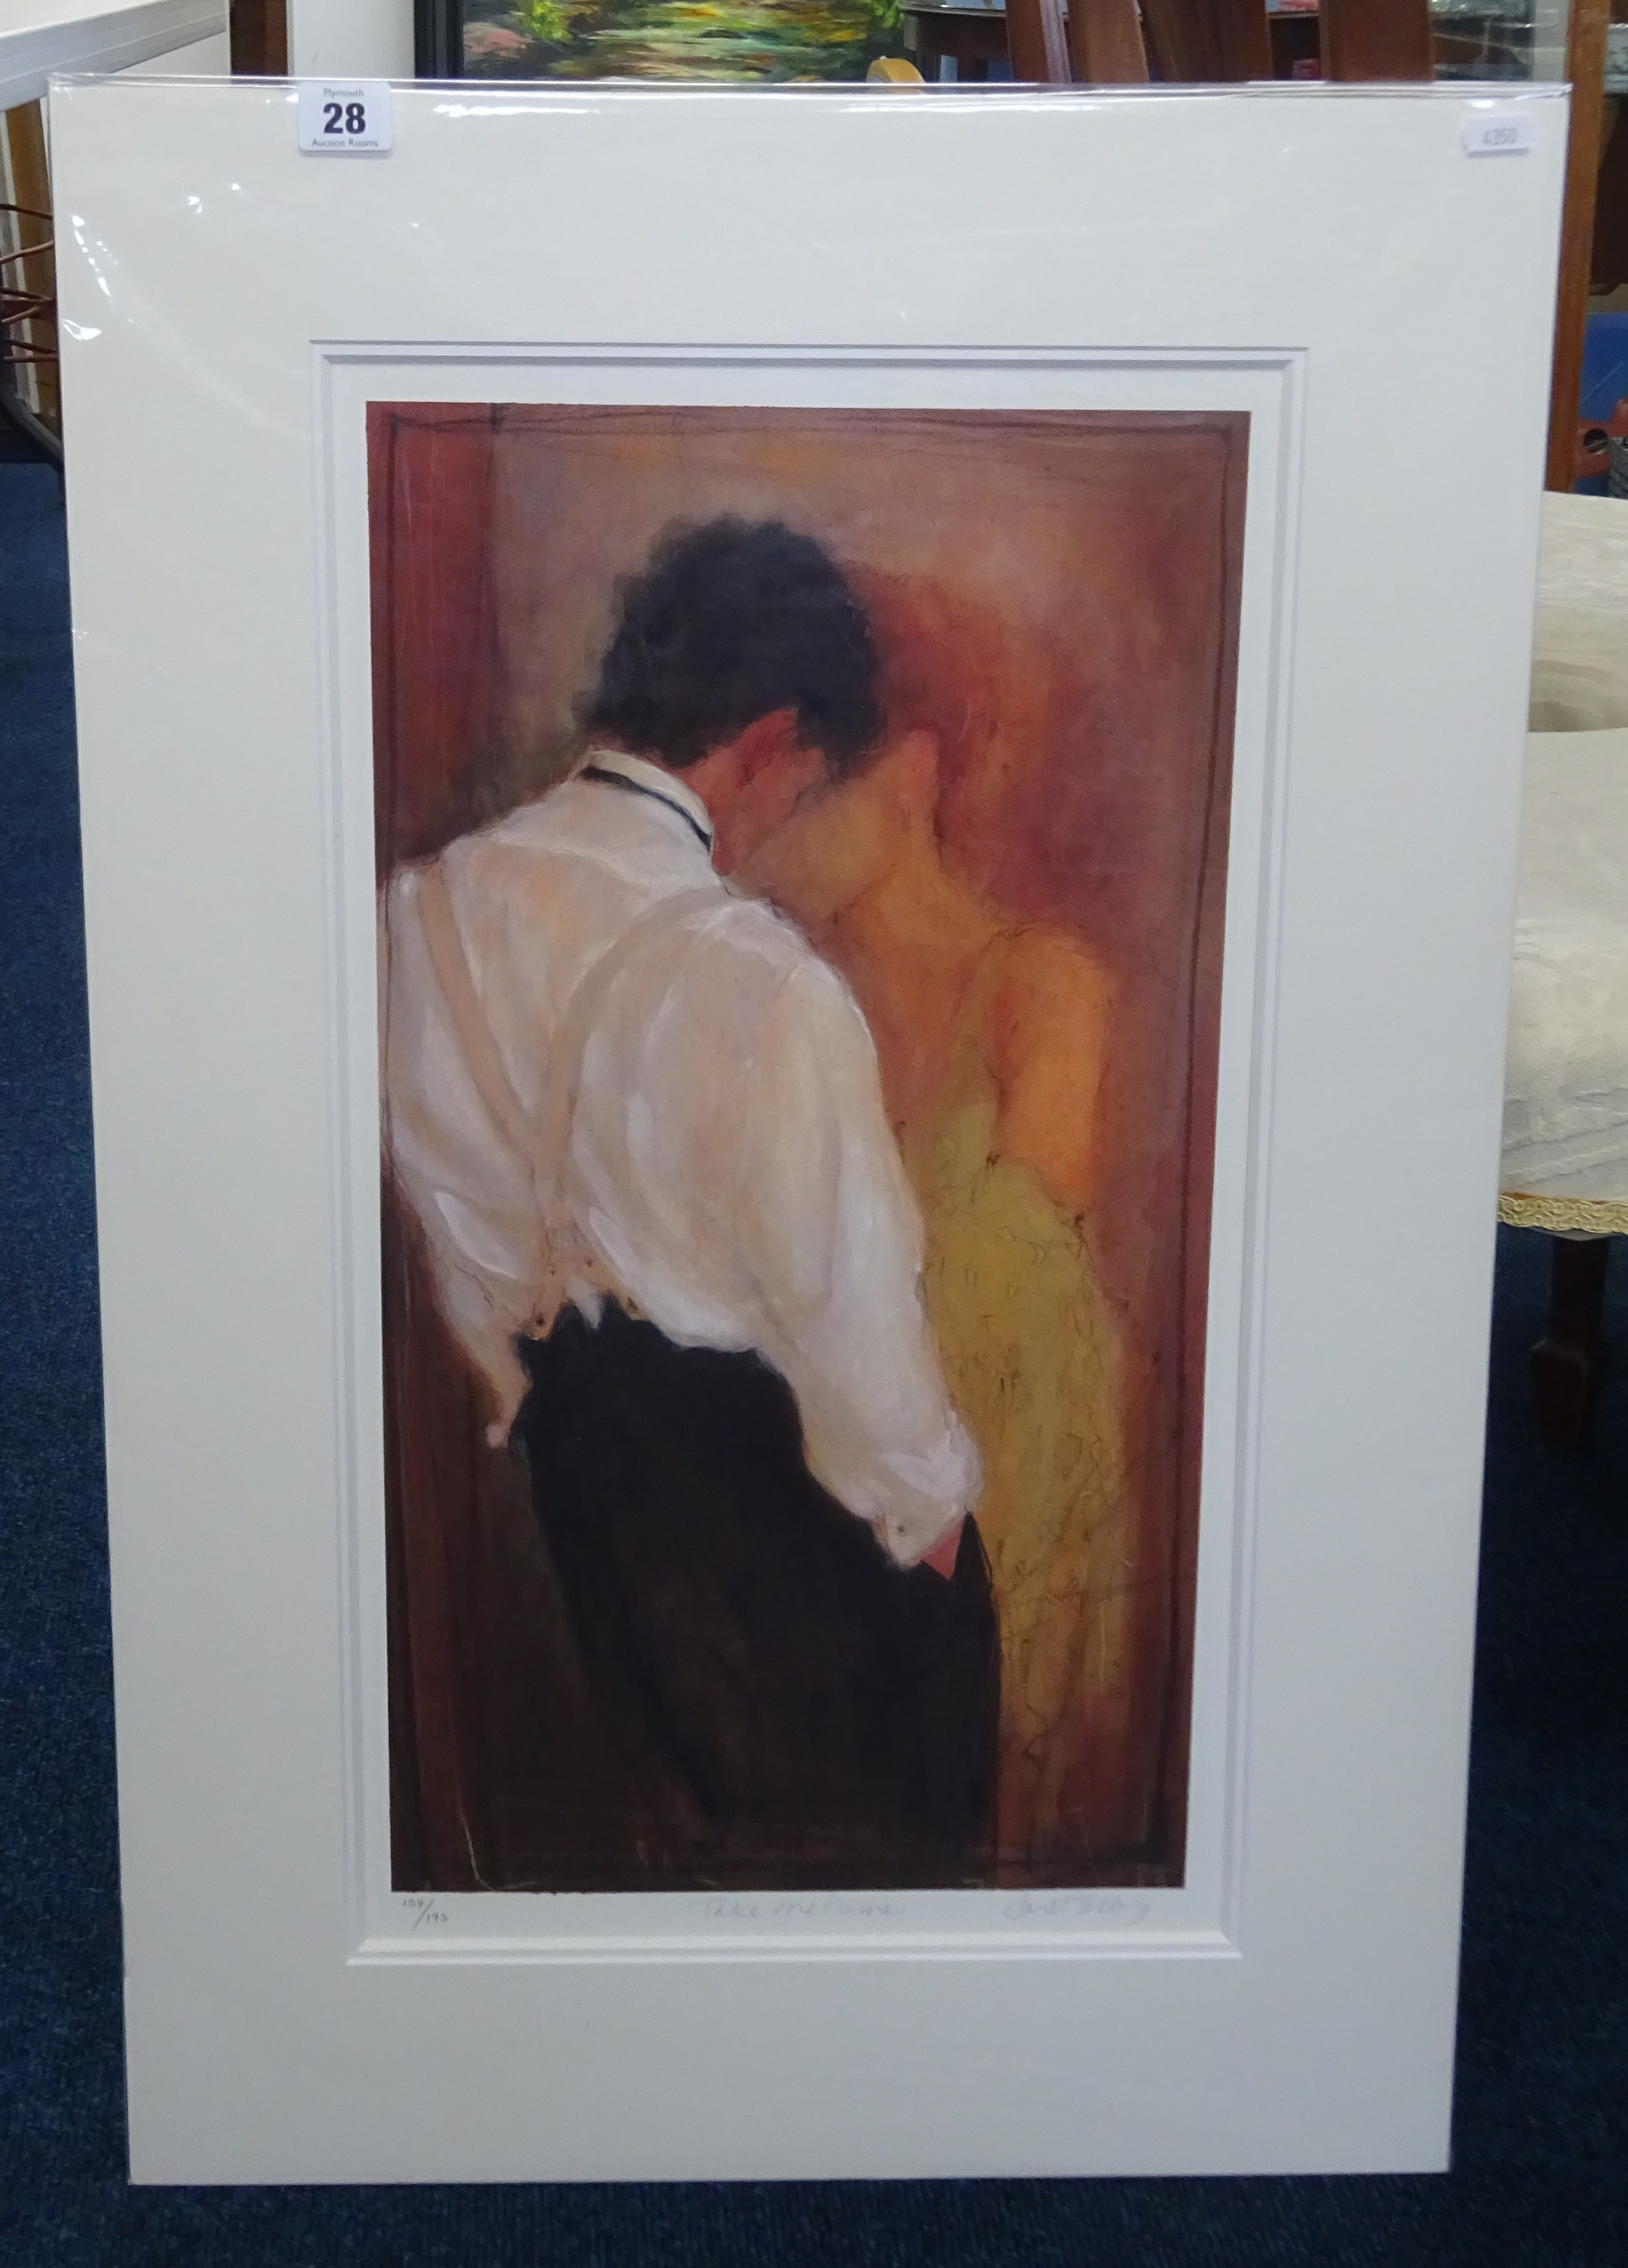 Lot 028 - Janet Treby, signed limited edition print 'Take me Home' 154/193, unframed.